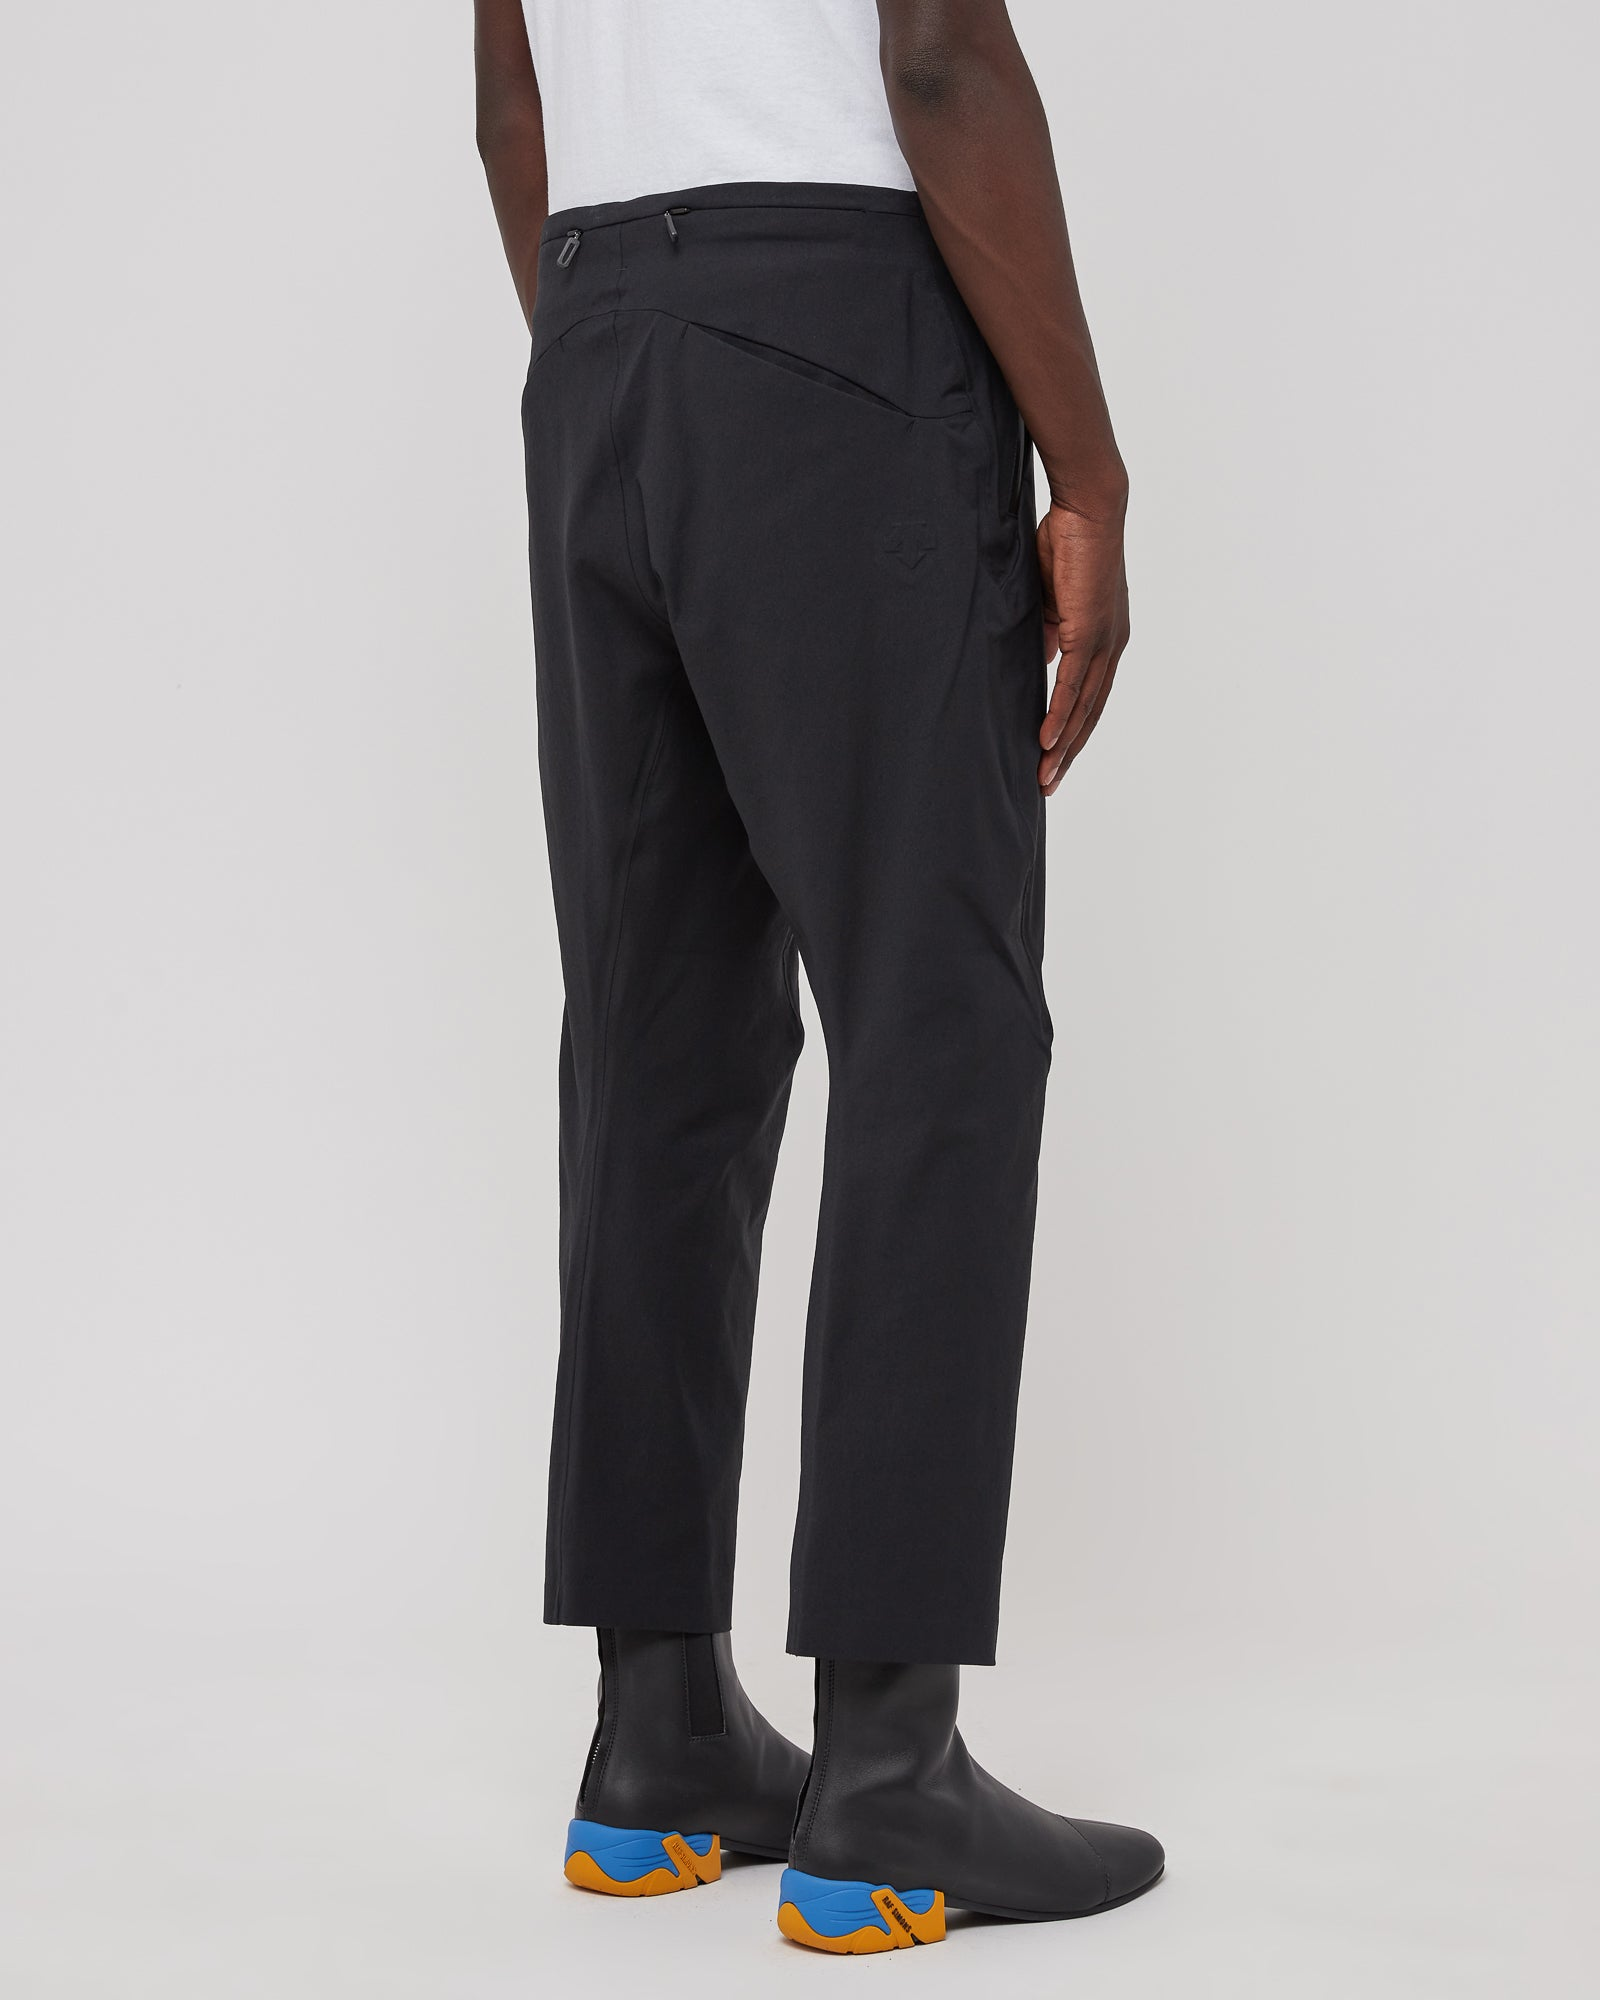 Relaxed Articulation Pants in Black